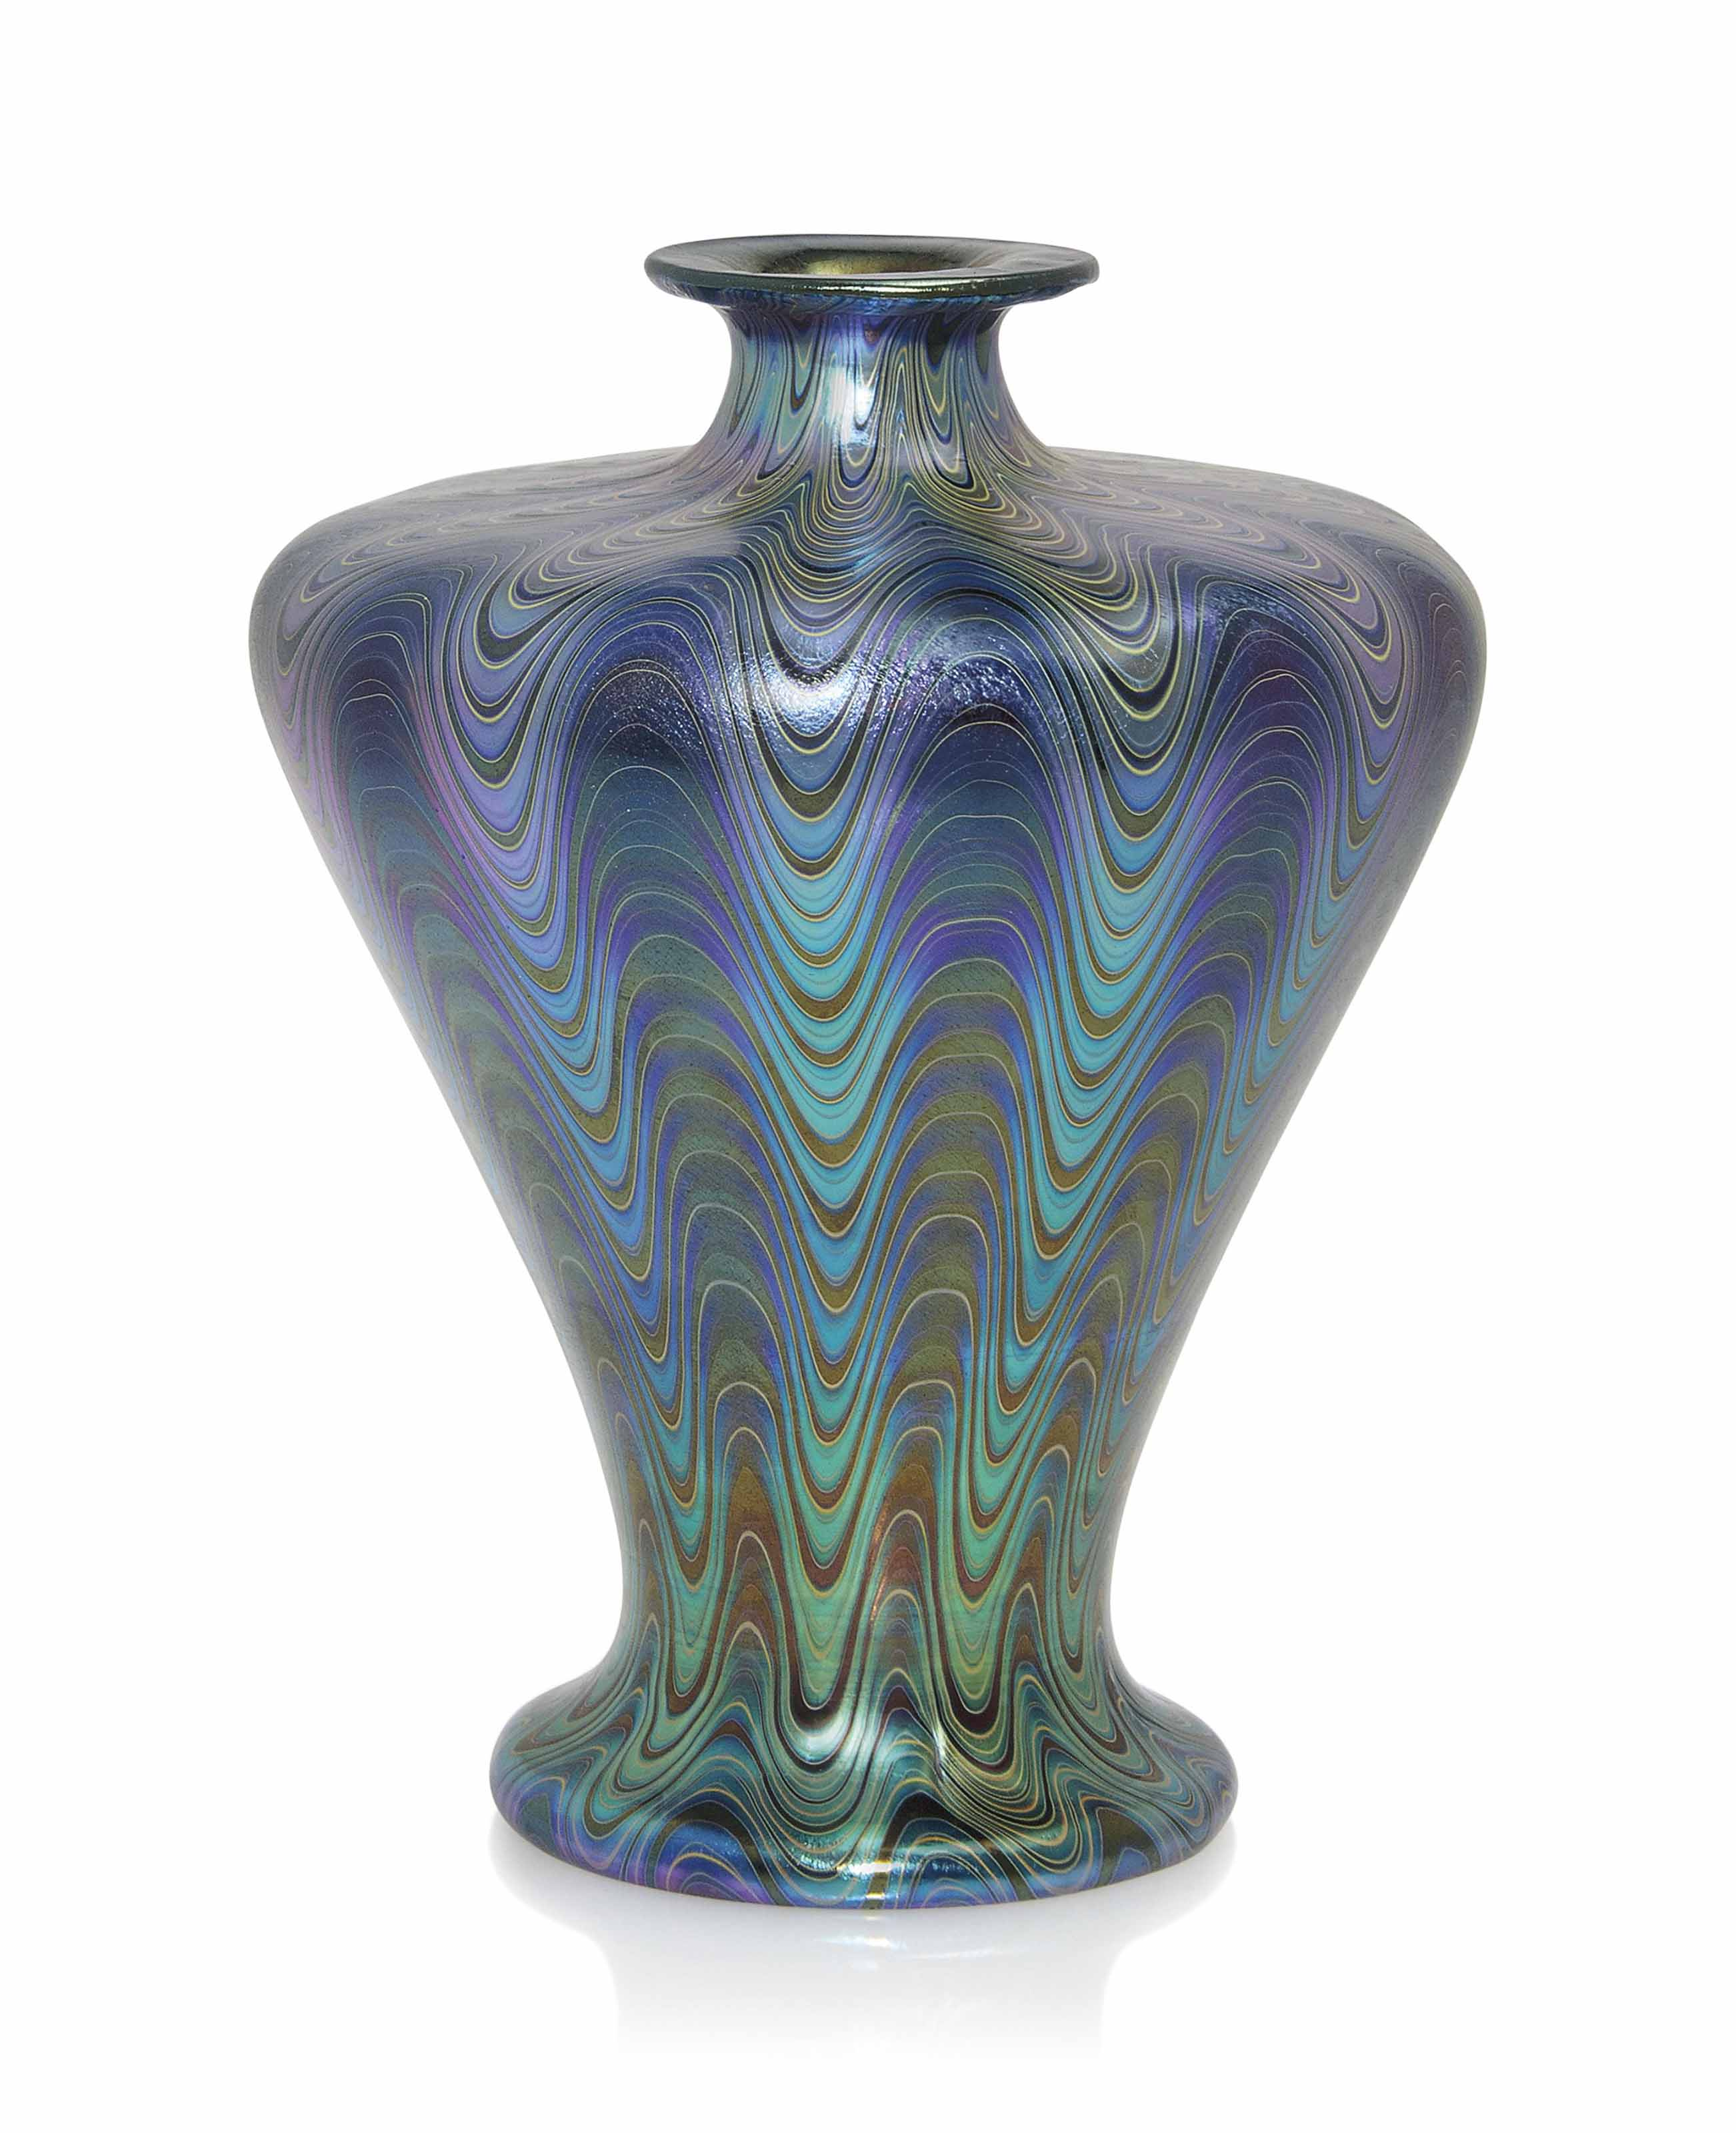 A LOETZ IRIDESCENT GLASS VASE